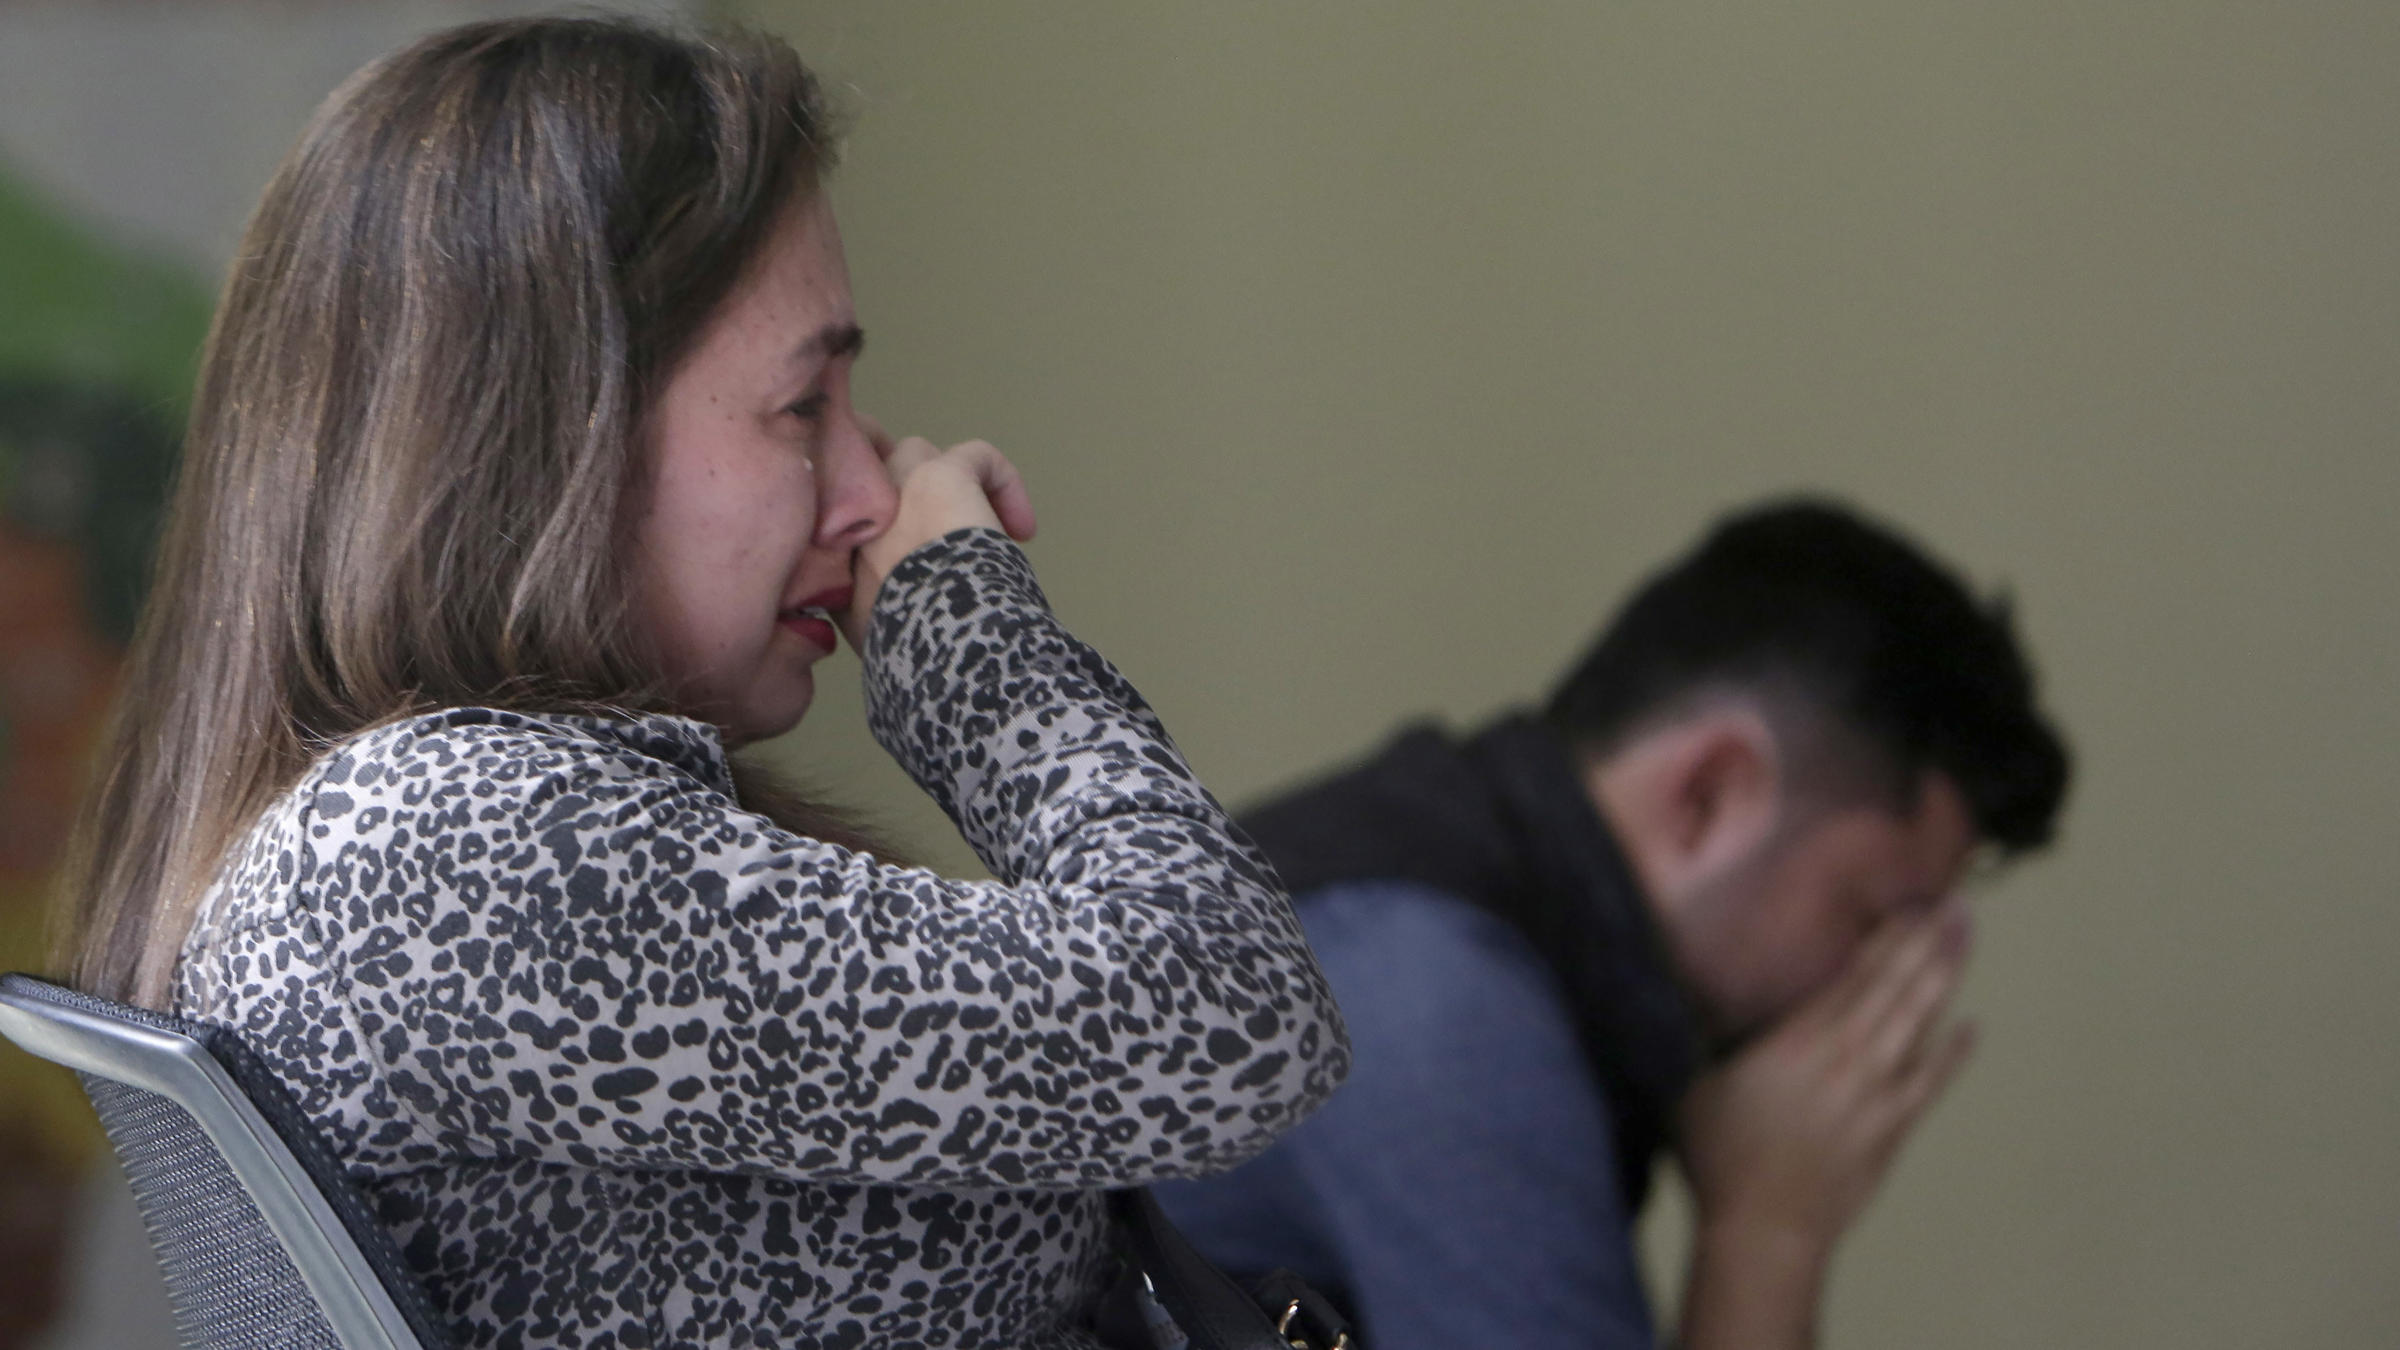 Relatives of the three men react in anguish as Moreno confirms their deaths Friday